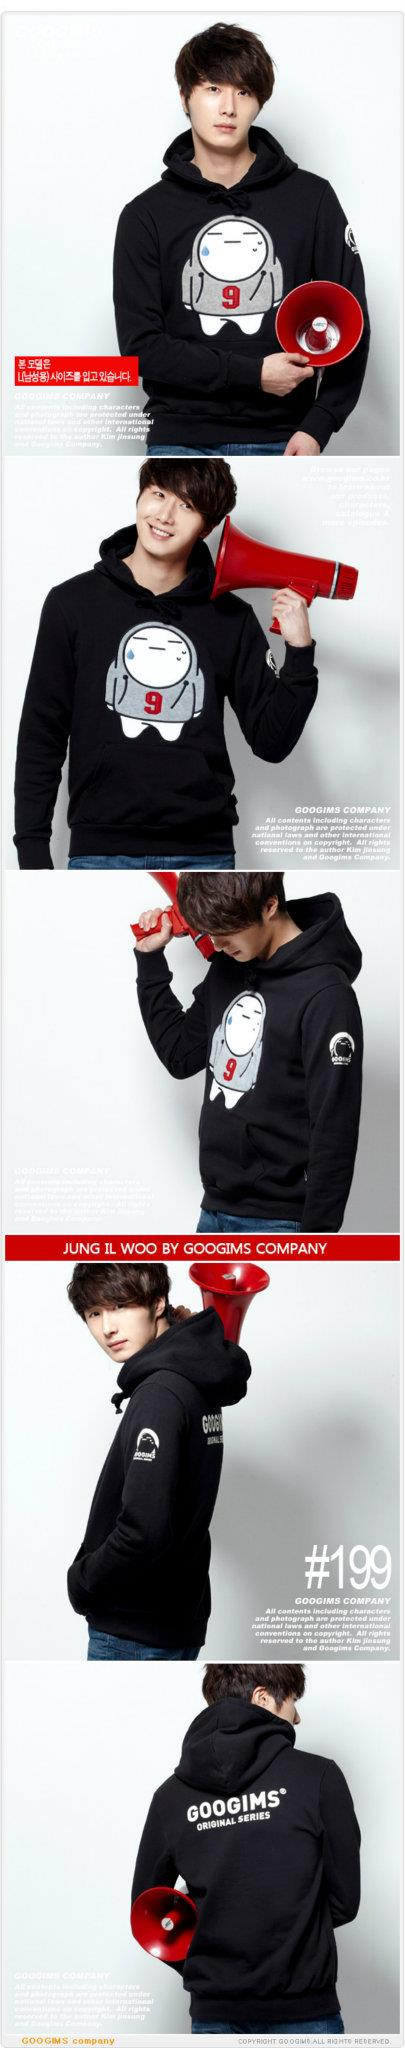 2011 10 Jung II-woo for Googims. Part 100050